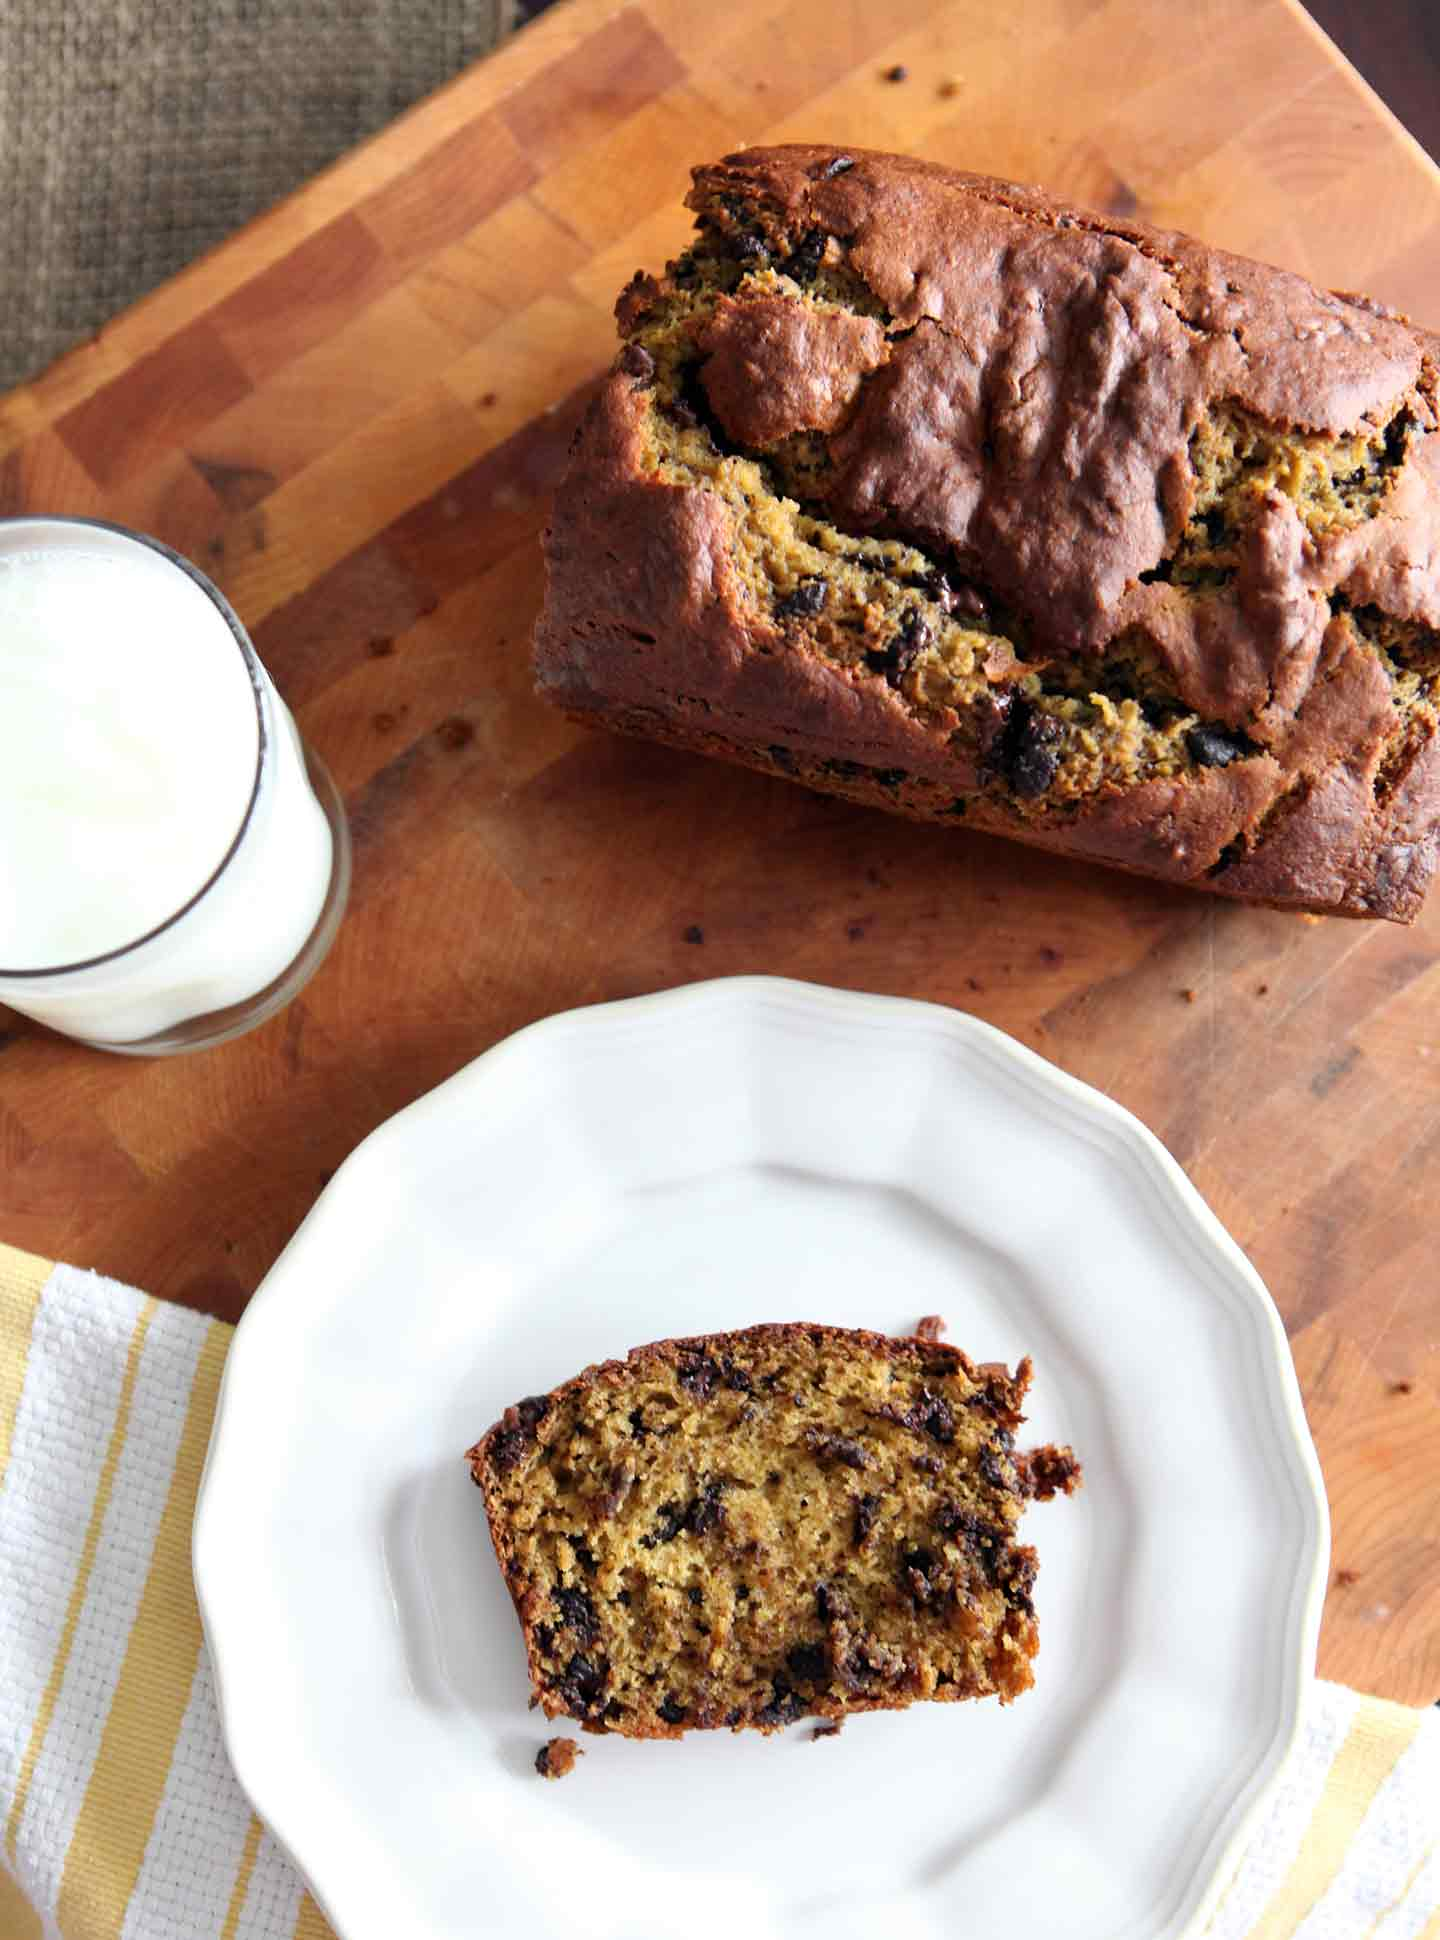 Chocolate Chip Pumpkin Bread is moist, full of pumpkin flavor and studded with dark chocolate chips. This pumpkin bread is a perfect addition to any breakfast table.